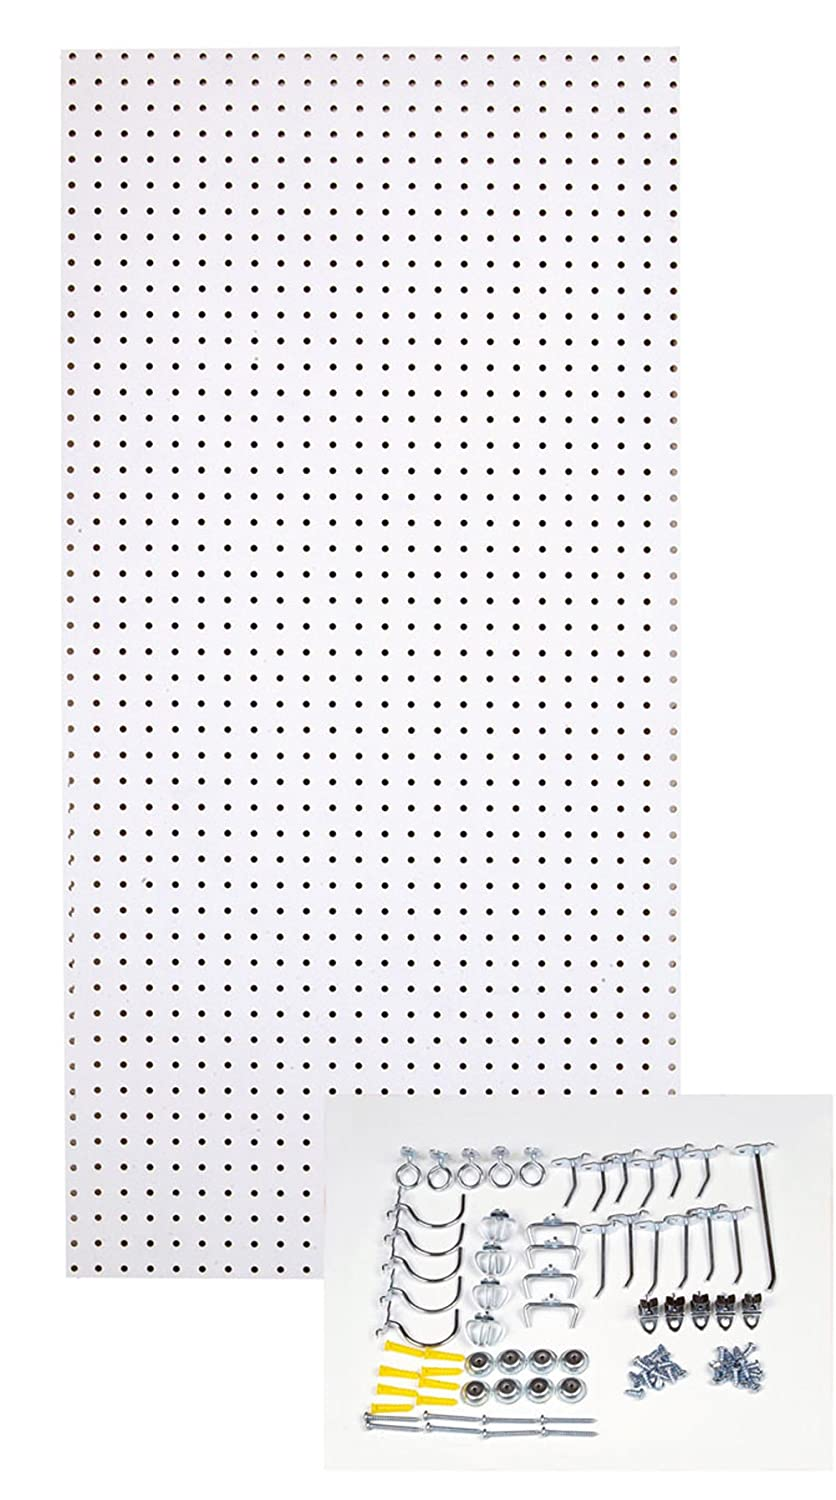 Install Pegboard, Install Pegboard In Garage, Install Pegboard on Concrete, Home Decor Ideas, Home Improvement Ideas, Home Decor DIY